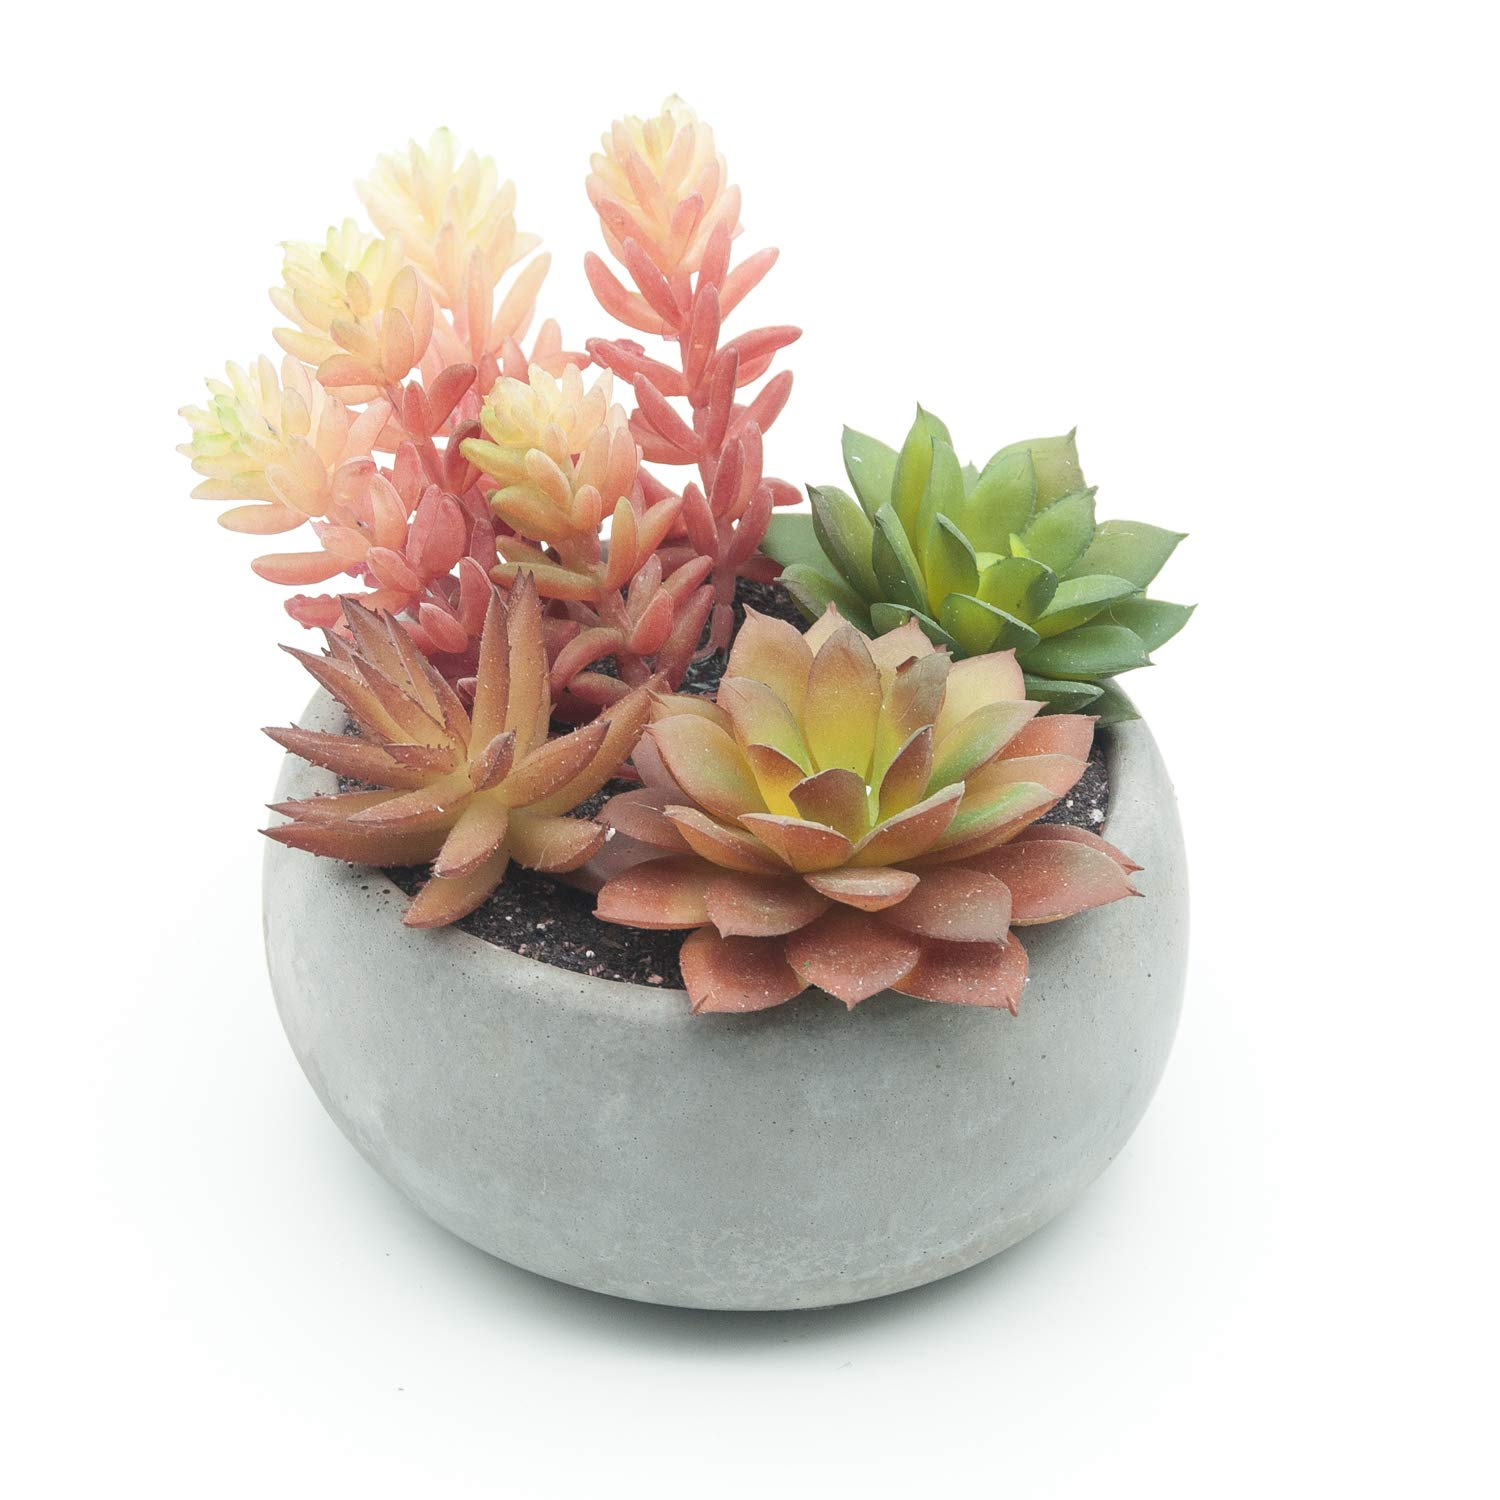 Velener Potted Artificial Succulent Plants Home Decoration (Red, Green)